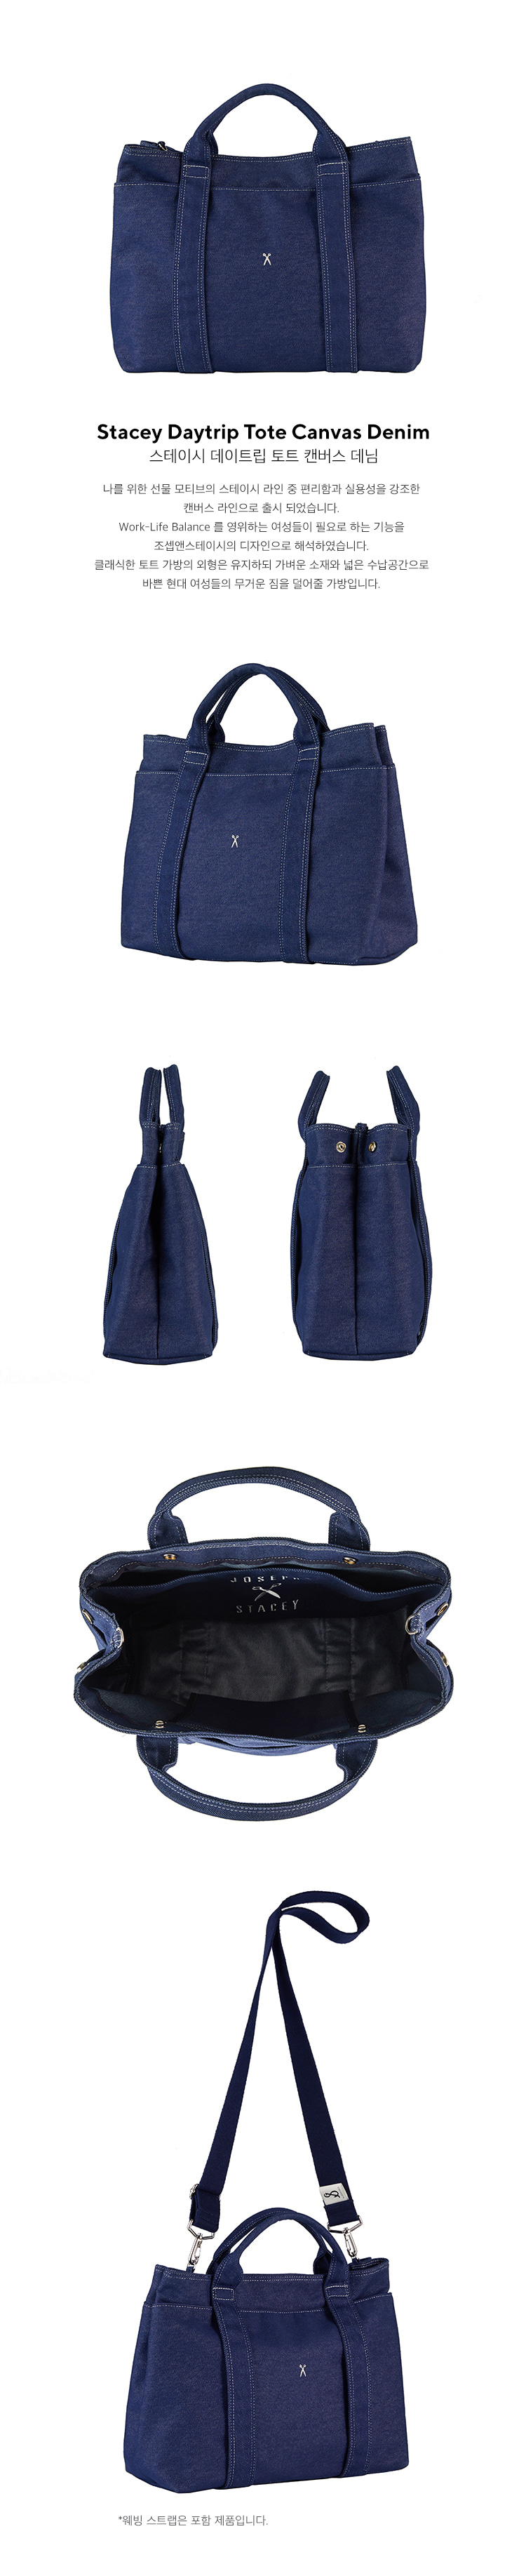 조셉앤스테이시(JOSEPH&STACEY) Stacey Daytrip Tote Canvas M Denim